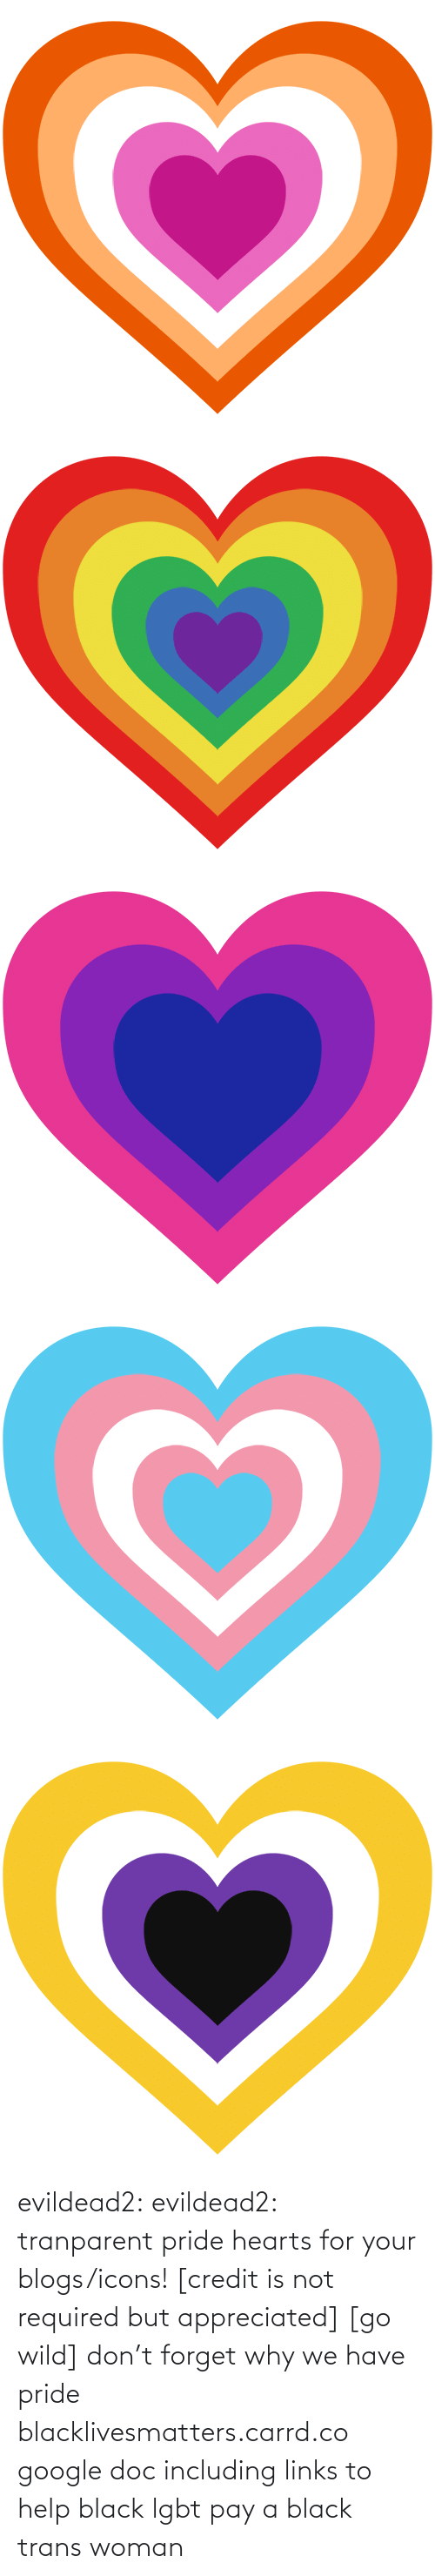 woman: evildead2:  evildead2:  tranparent pride hearts for your blogs/icons! [credit is not required but appreciated] [go wild]      don't forget why we have pride  blacklivesmatters.carrd.co  google doc including links to help black lgbt pay a black trans woman